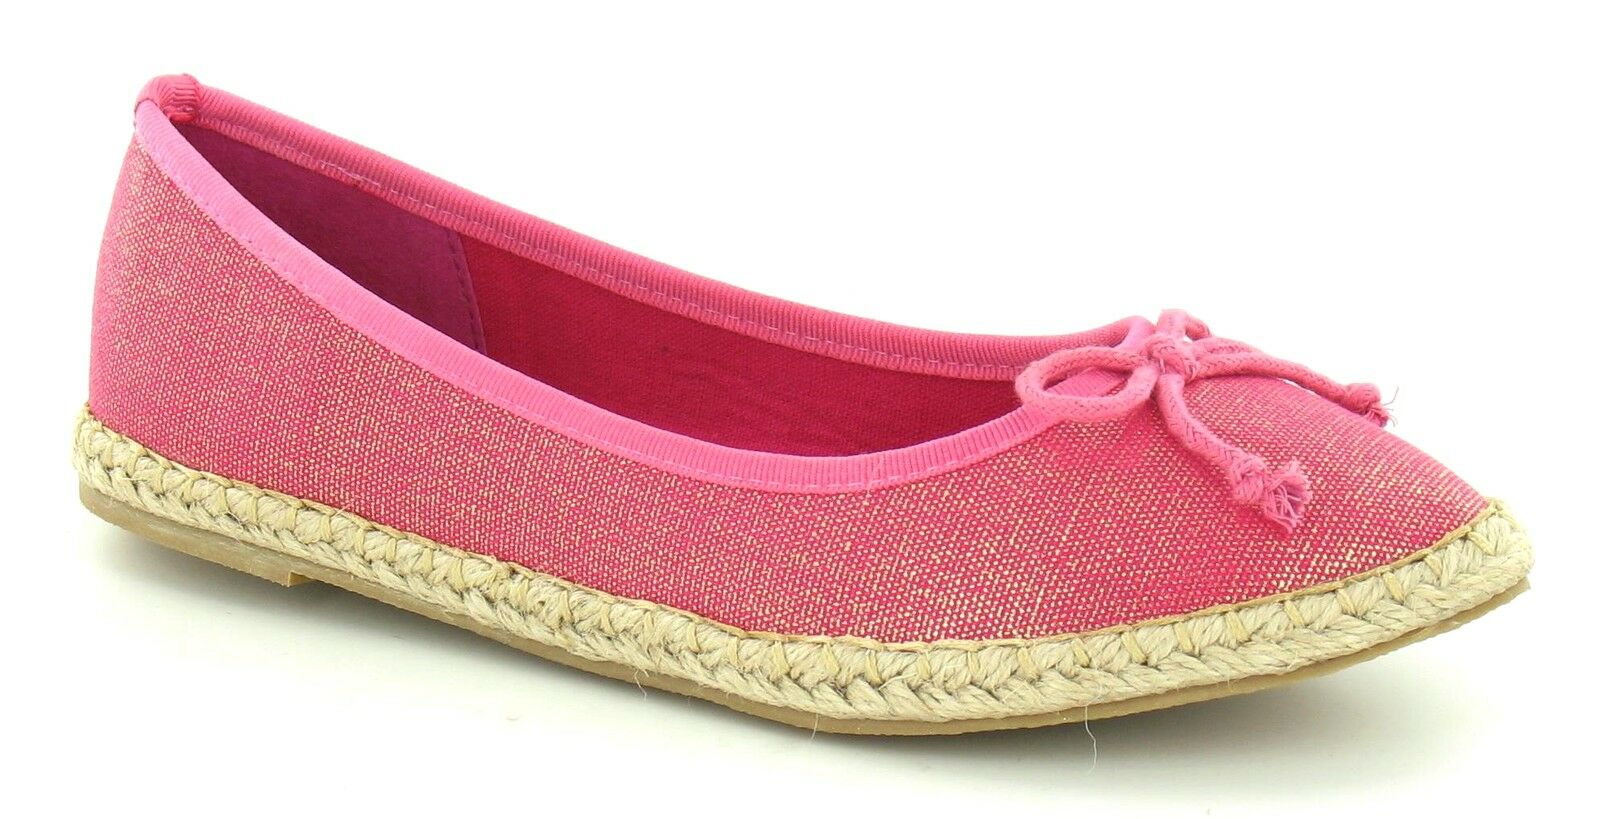 SOLDE Spot On or F2233 femmes Fuchsia / or On brillant effet espadrille chaussures 30c6cd